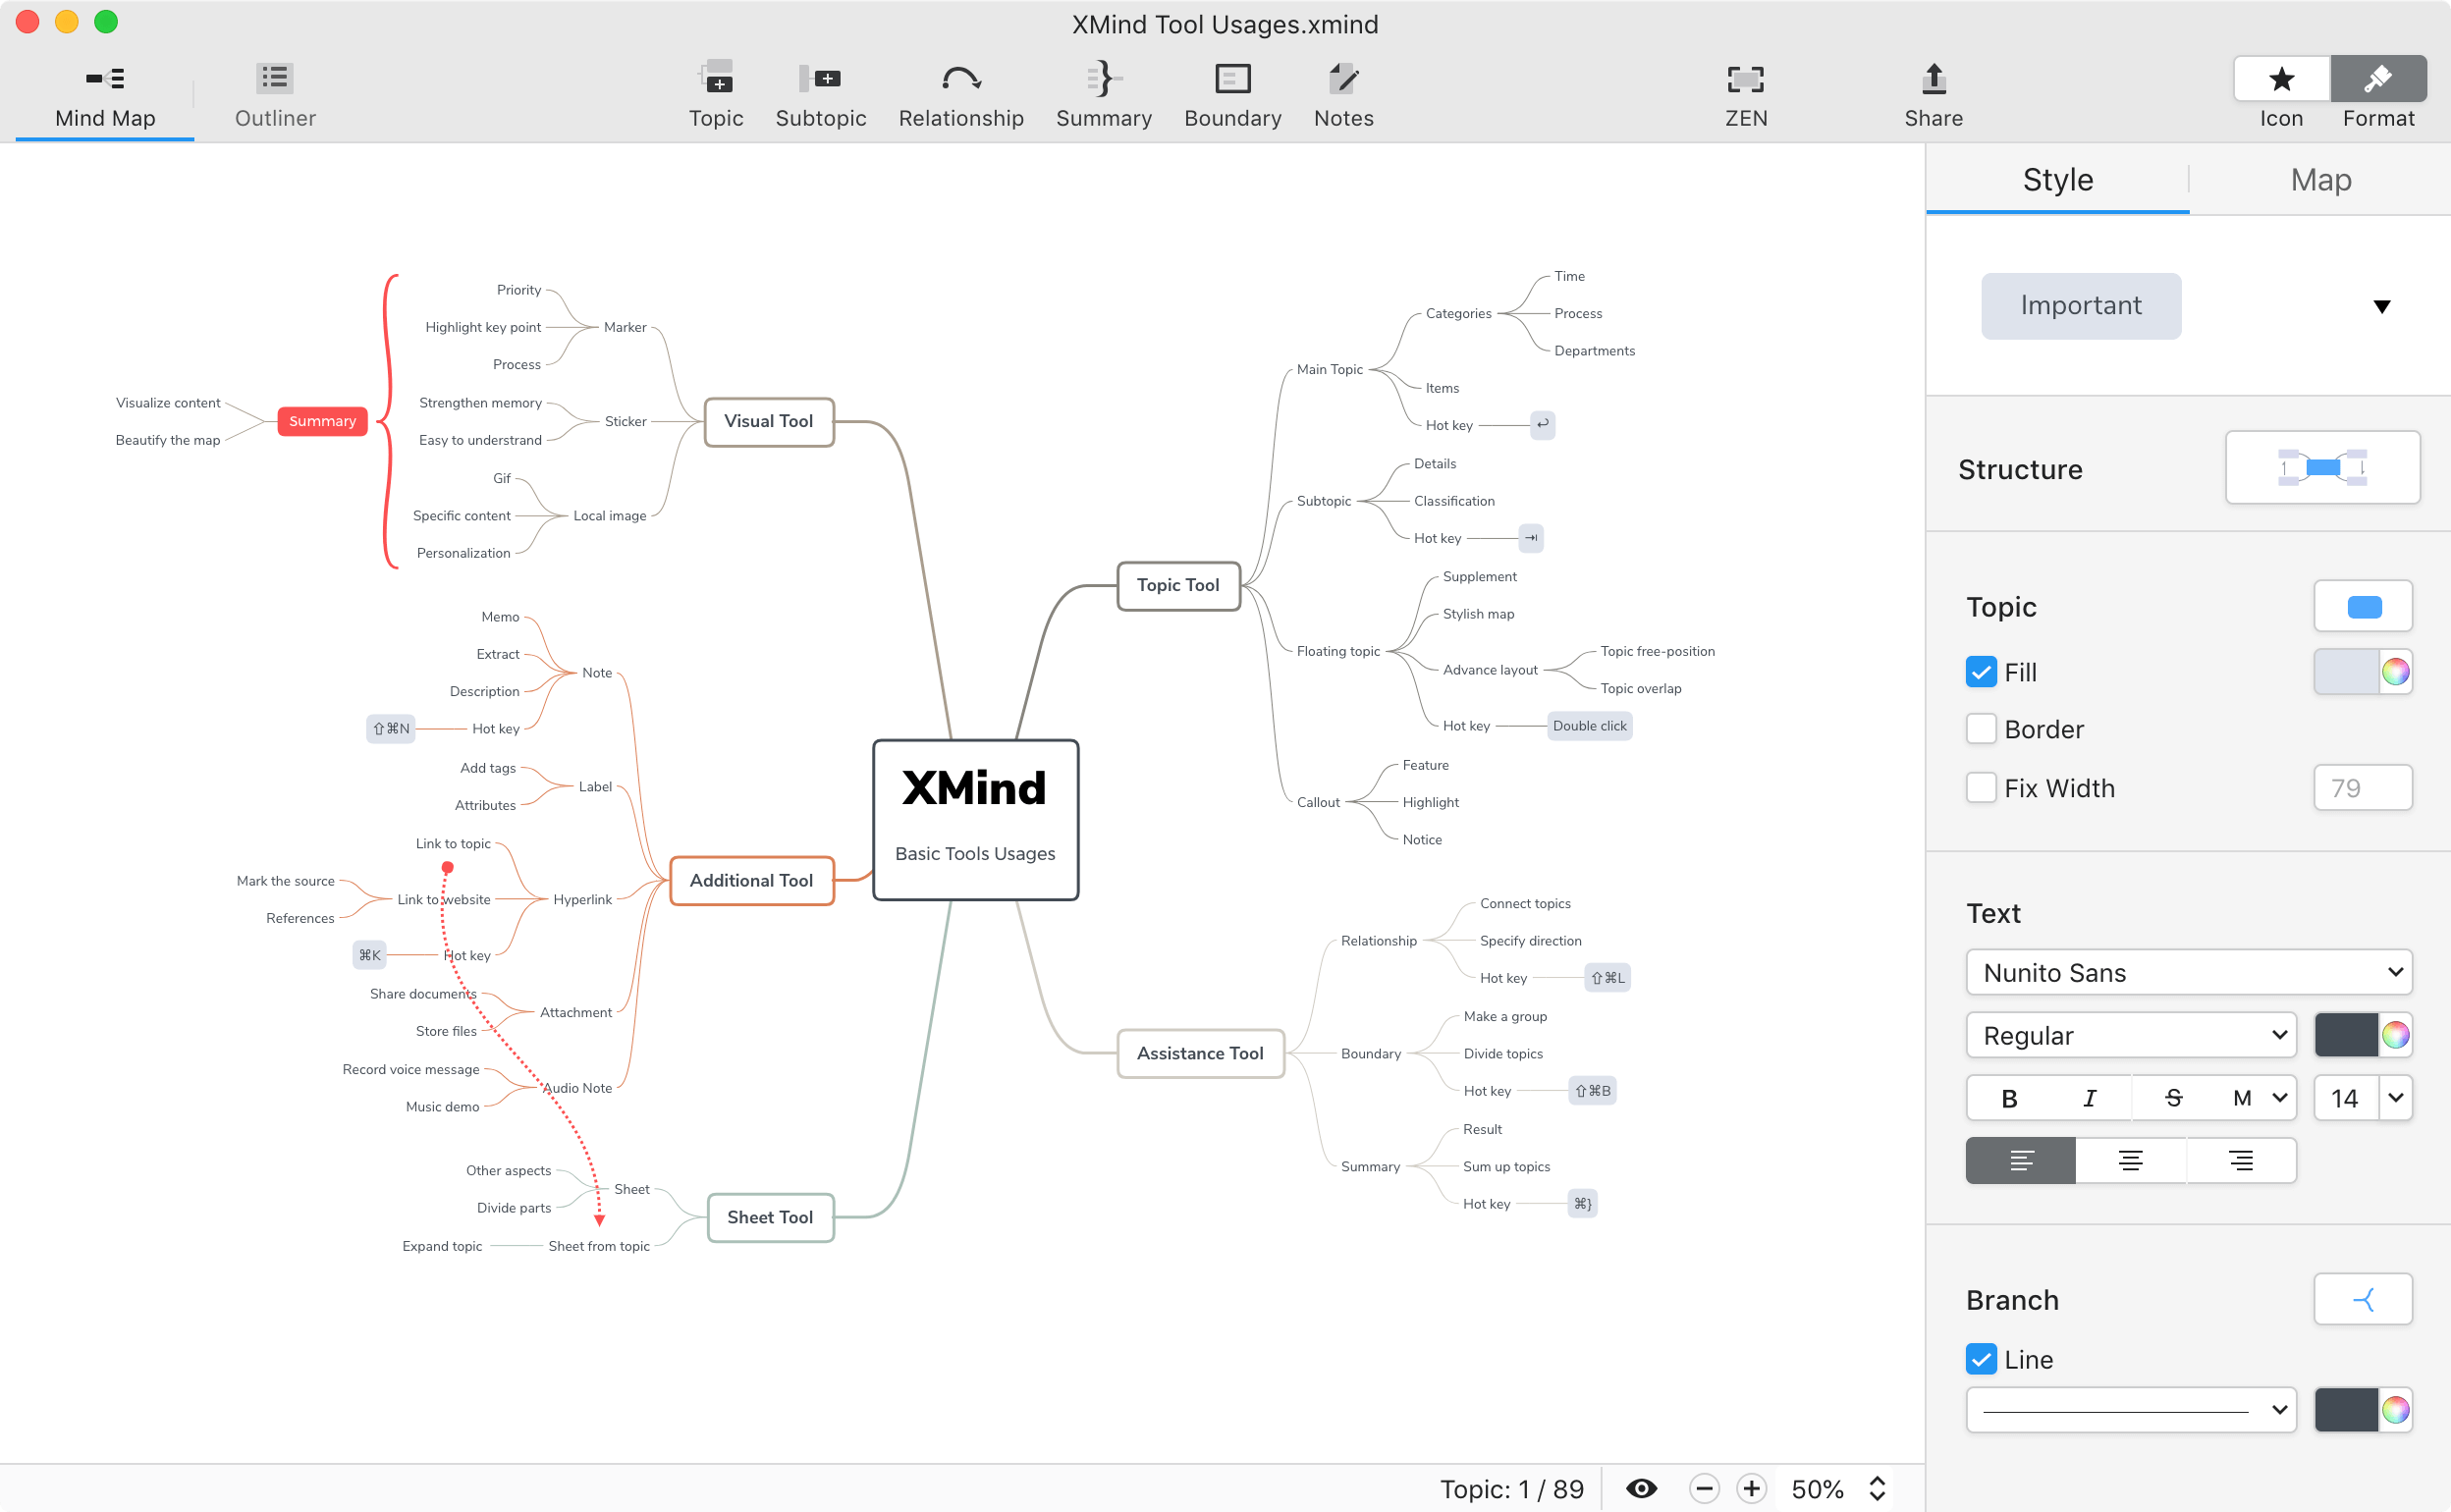 XMind website image